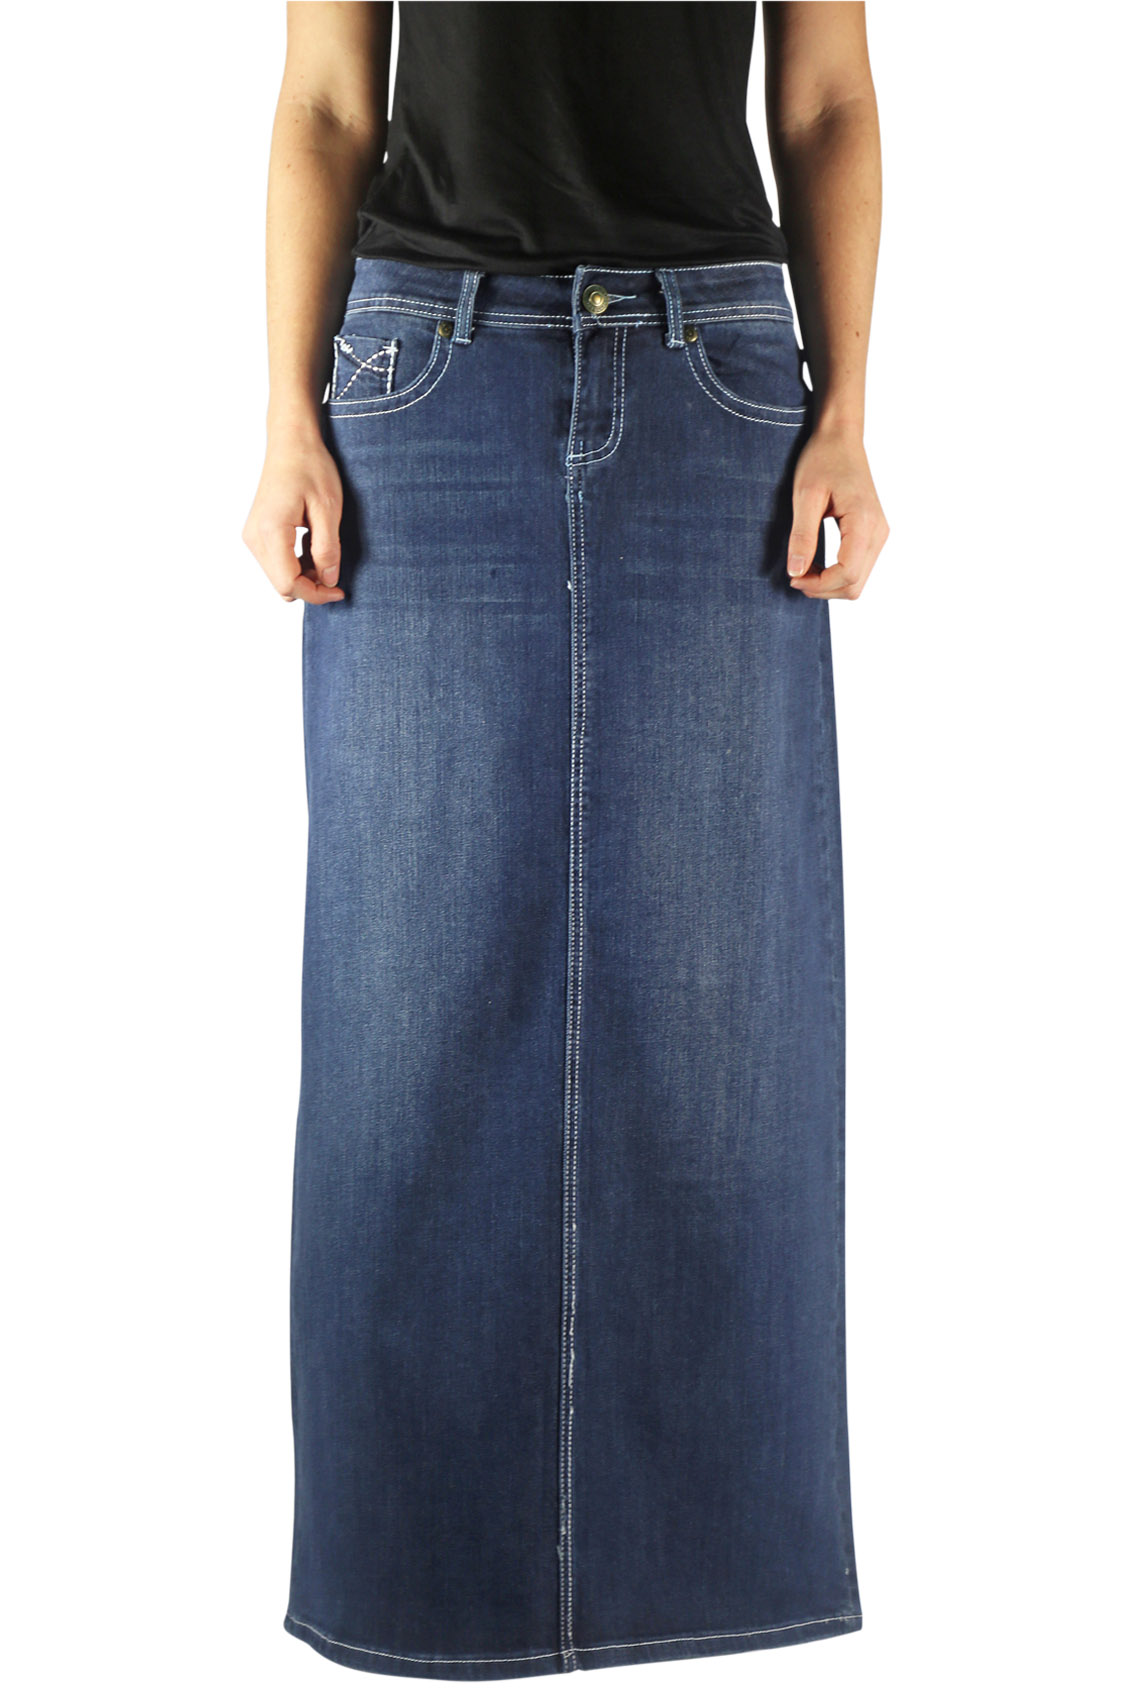 Free shipping and returns on Women's Denim Skirts at topinsurances.ga